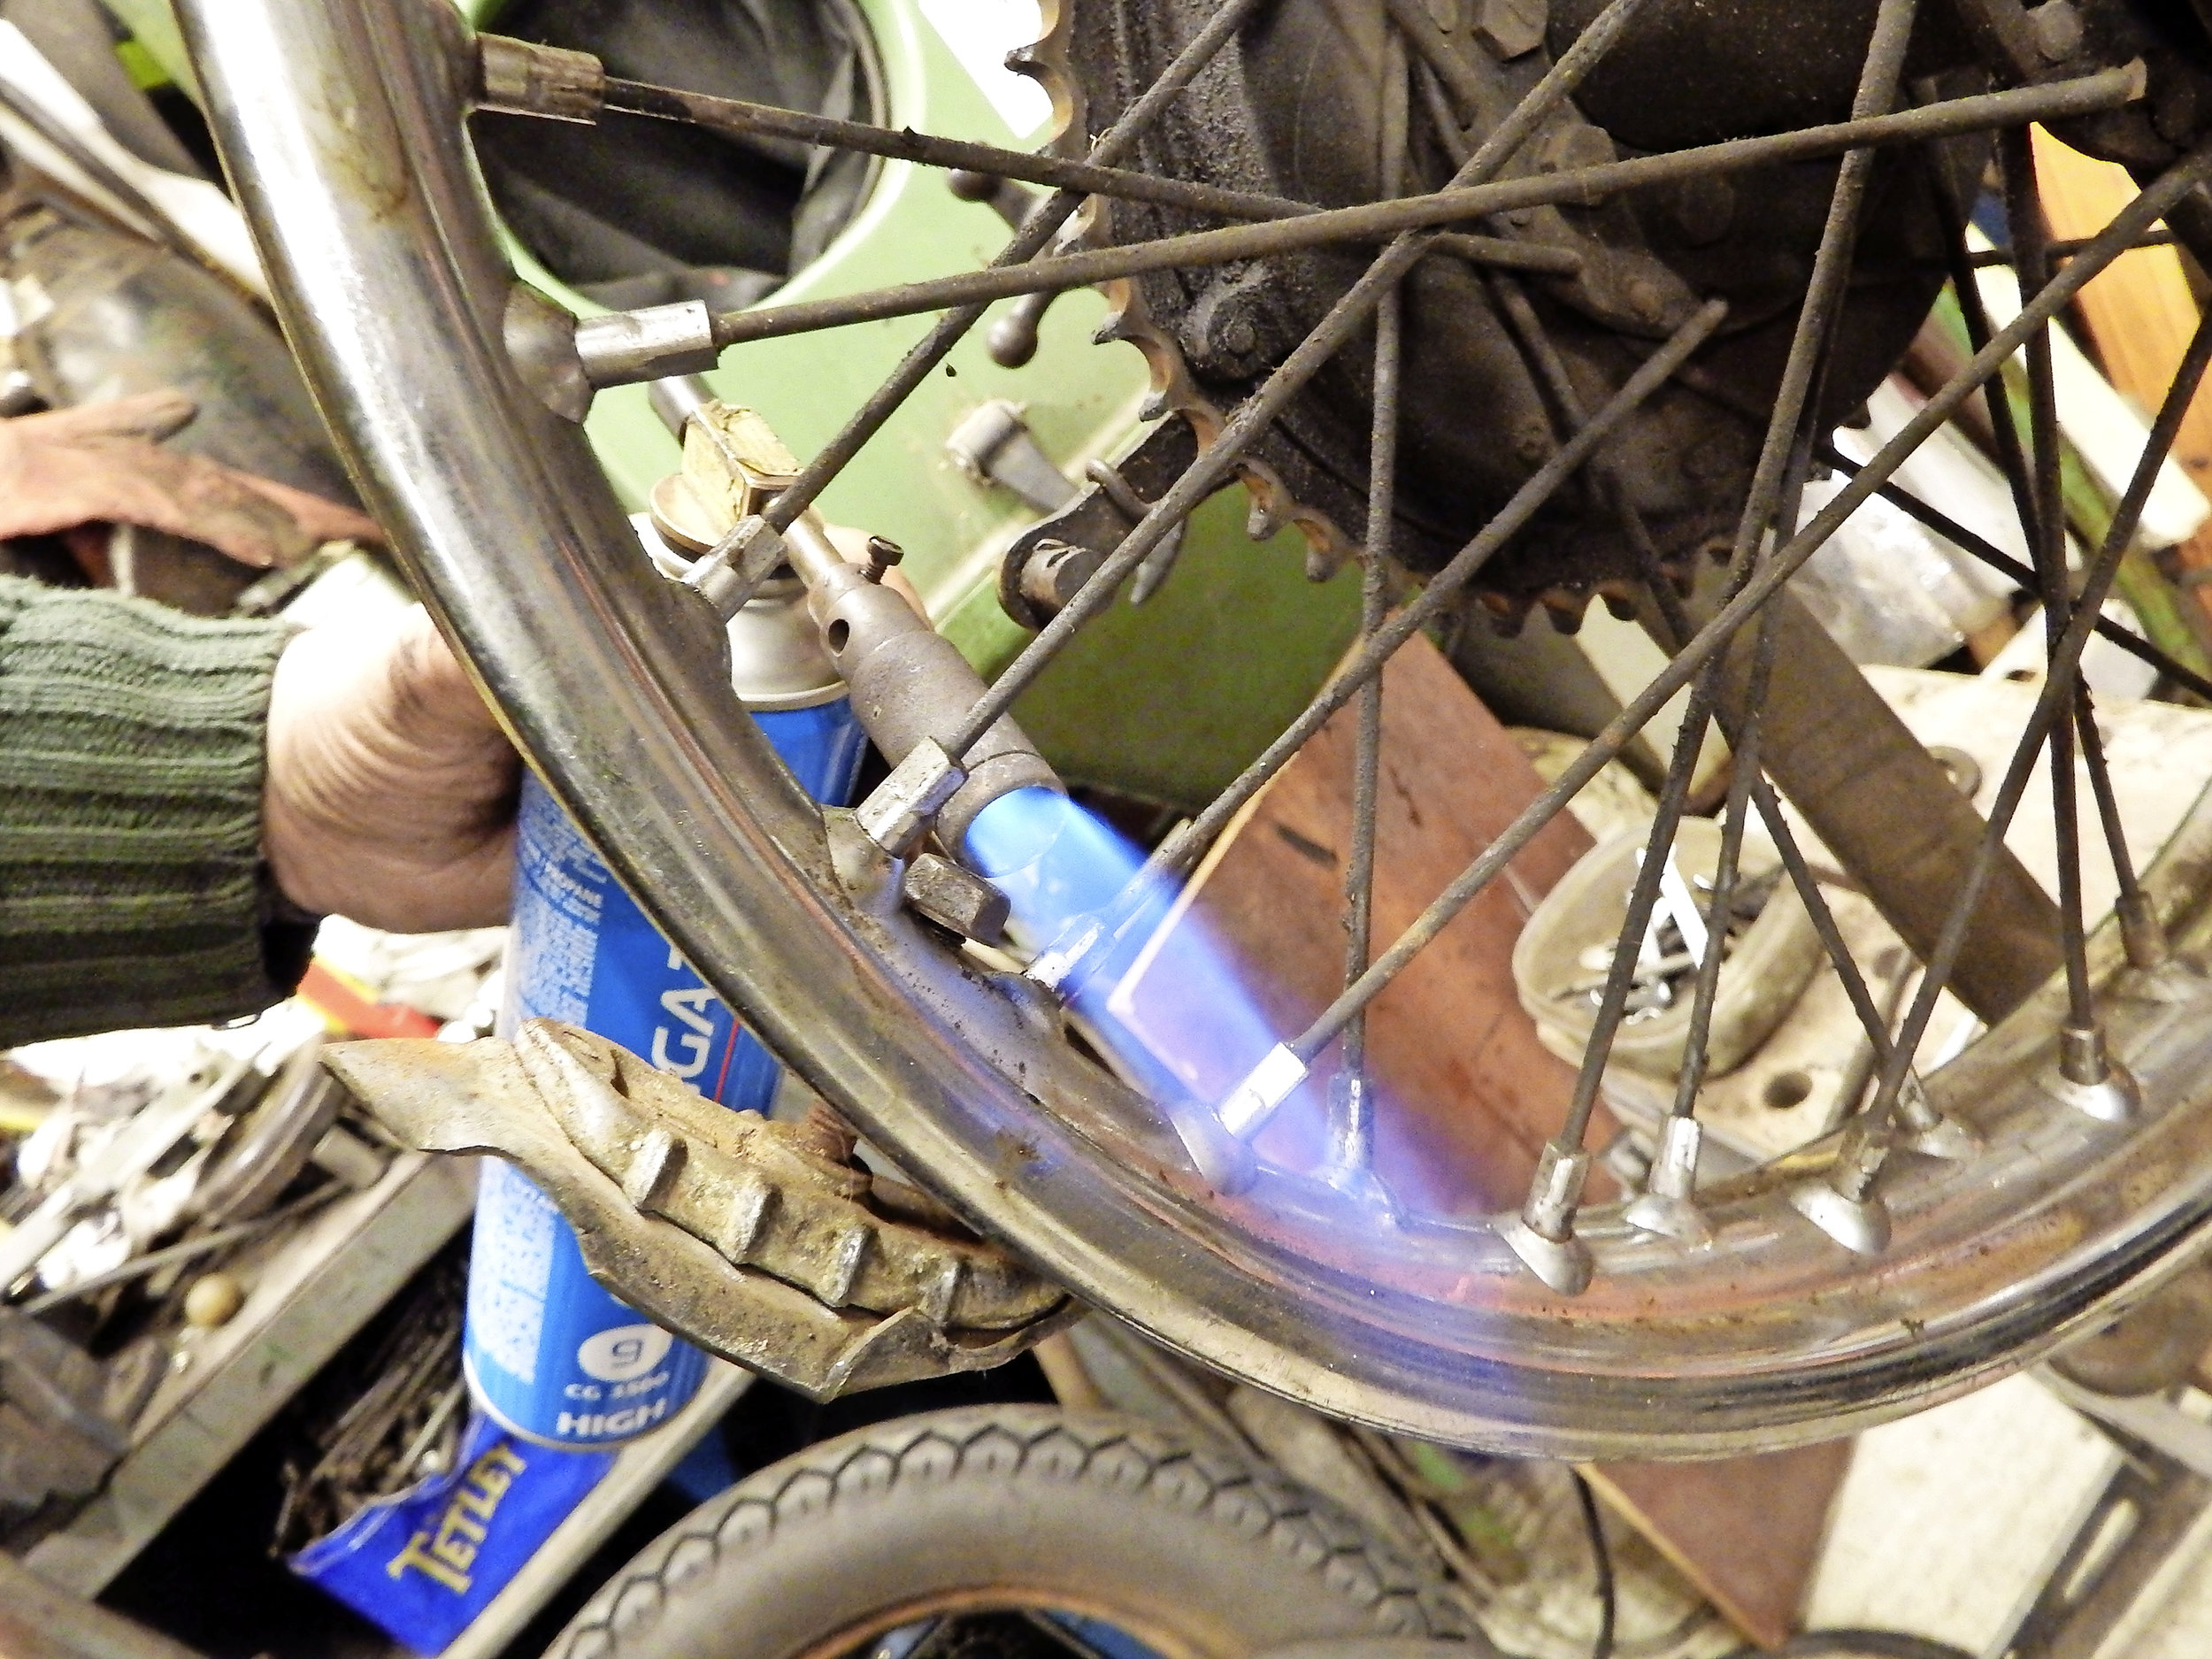 2.  Tightening may cause the sharp spoke end to poke out of the nipple, so remove the tyre. If nipple won't move freely don't force it – breakage is a much bigger problem. Use heat.